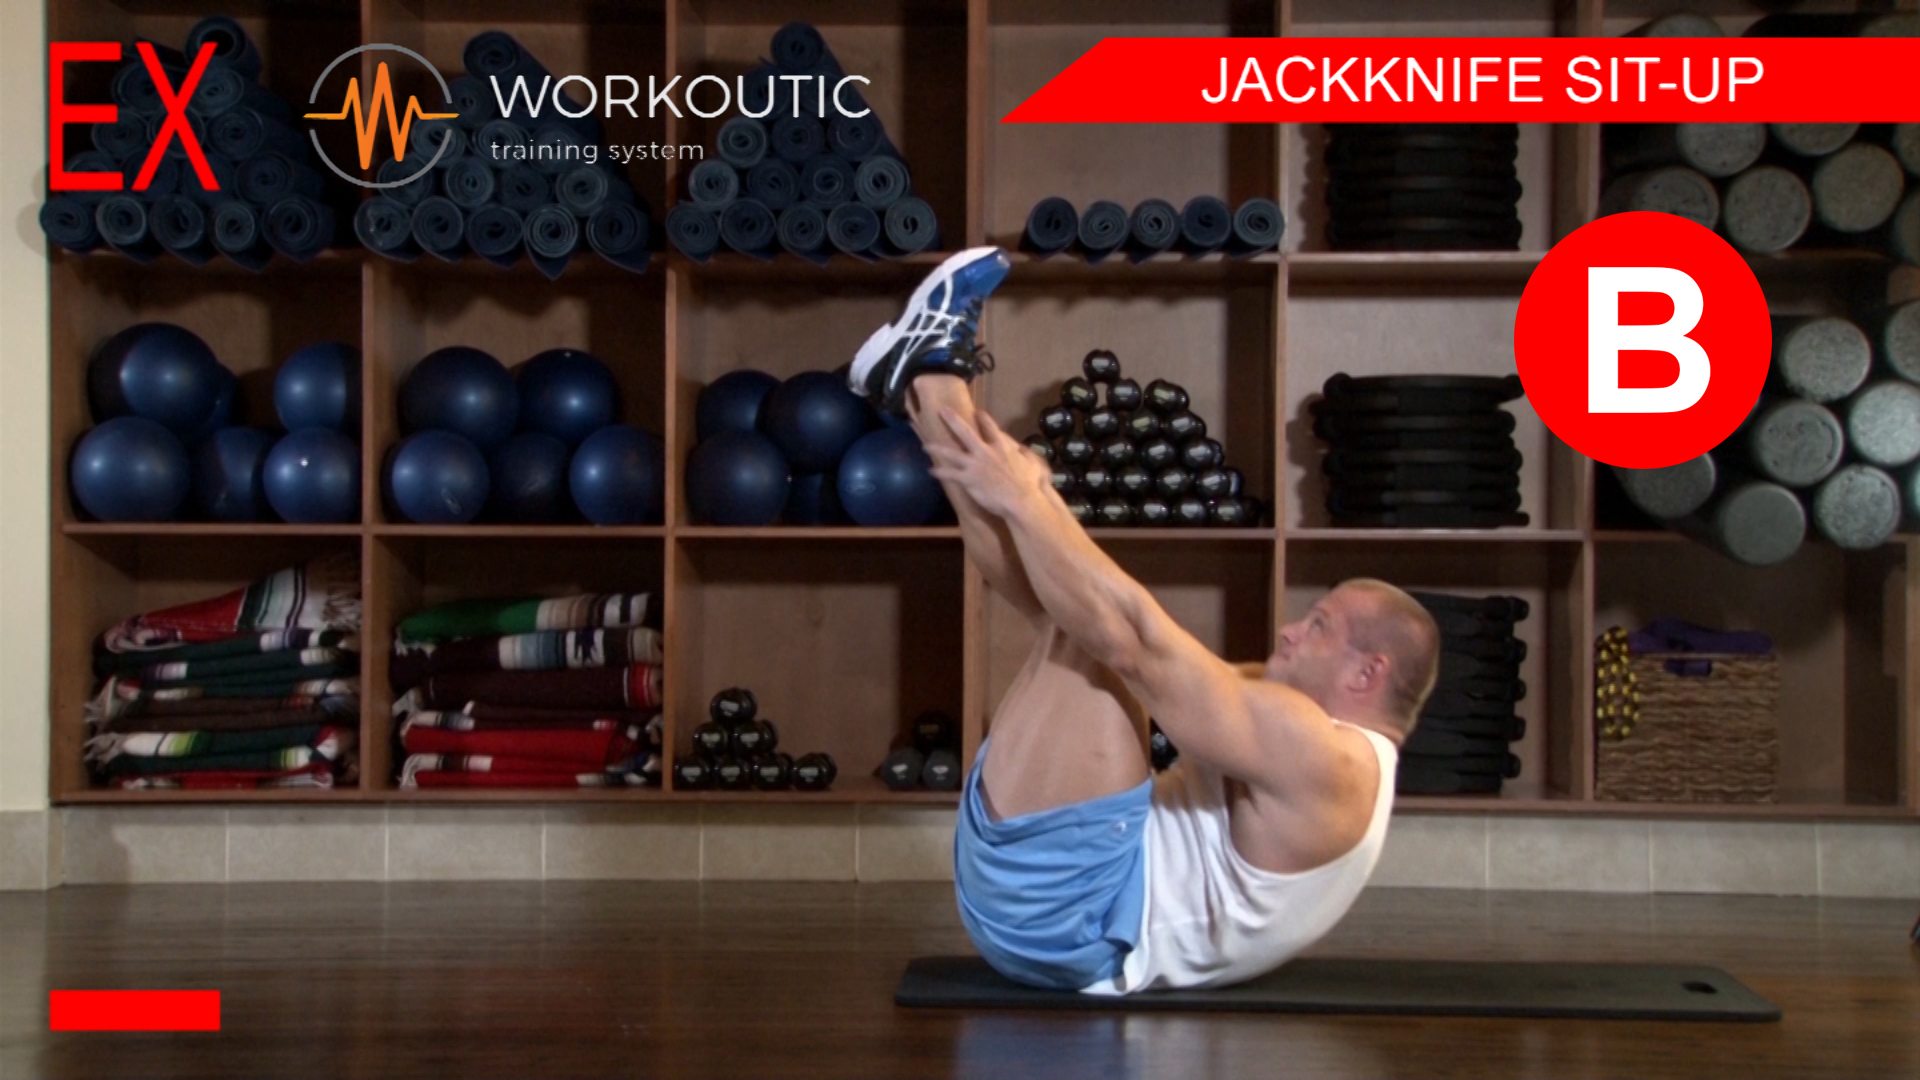 Abs Exercises - Workutic - 6 pack special - Jackknife Sit-Up Exhale